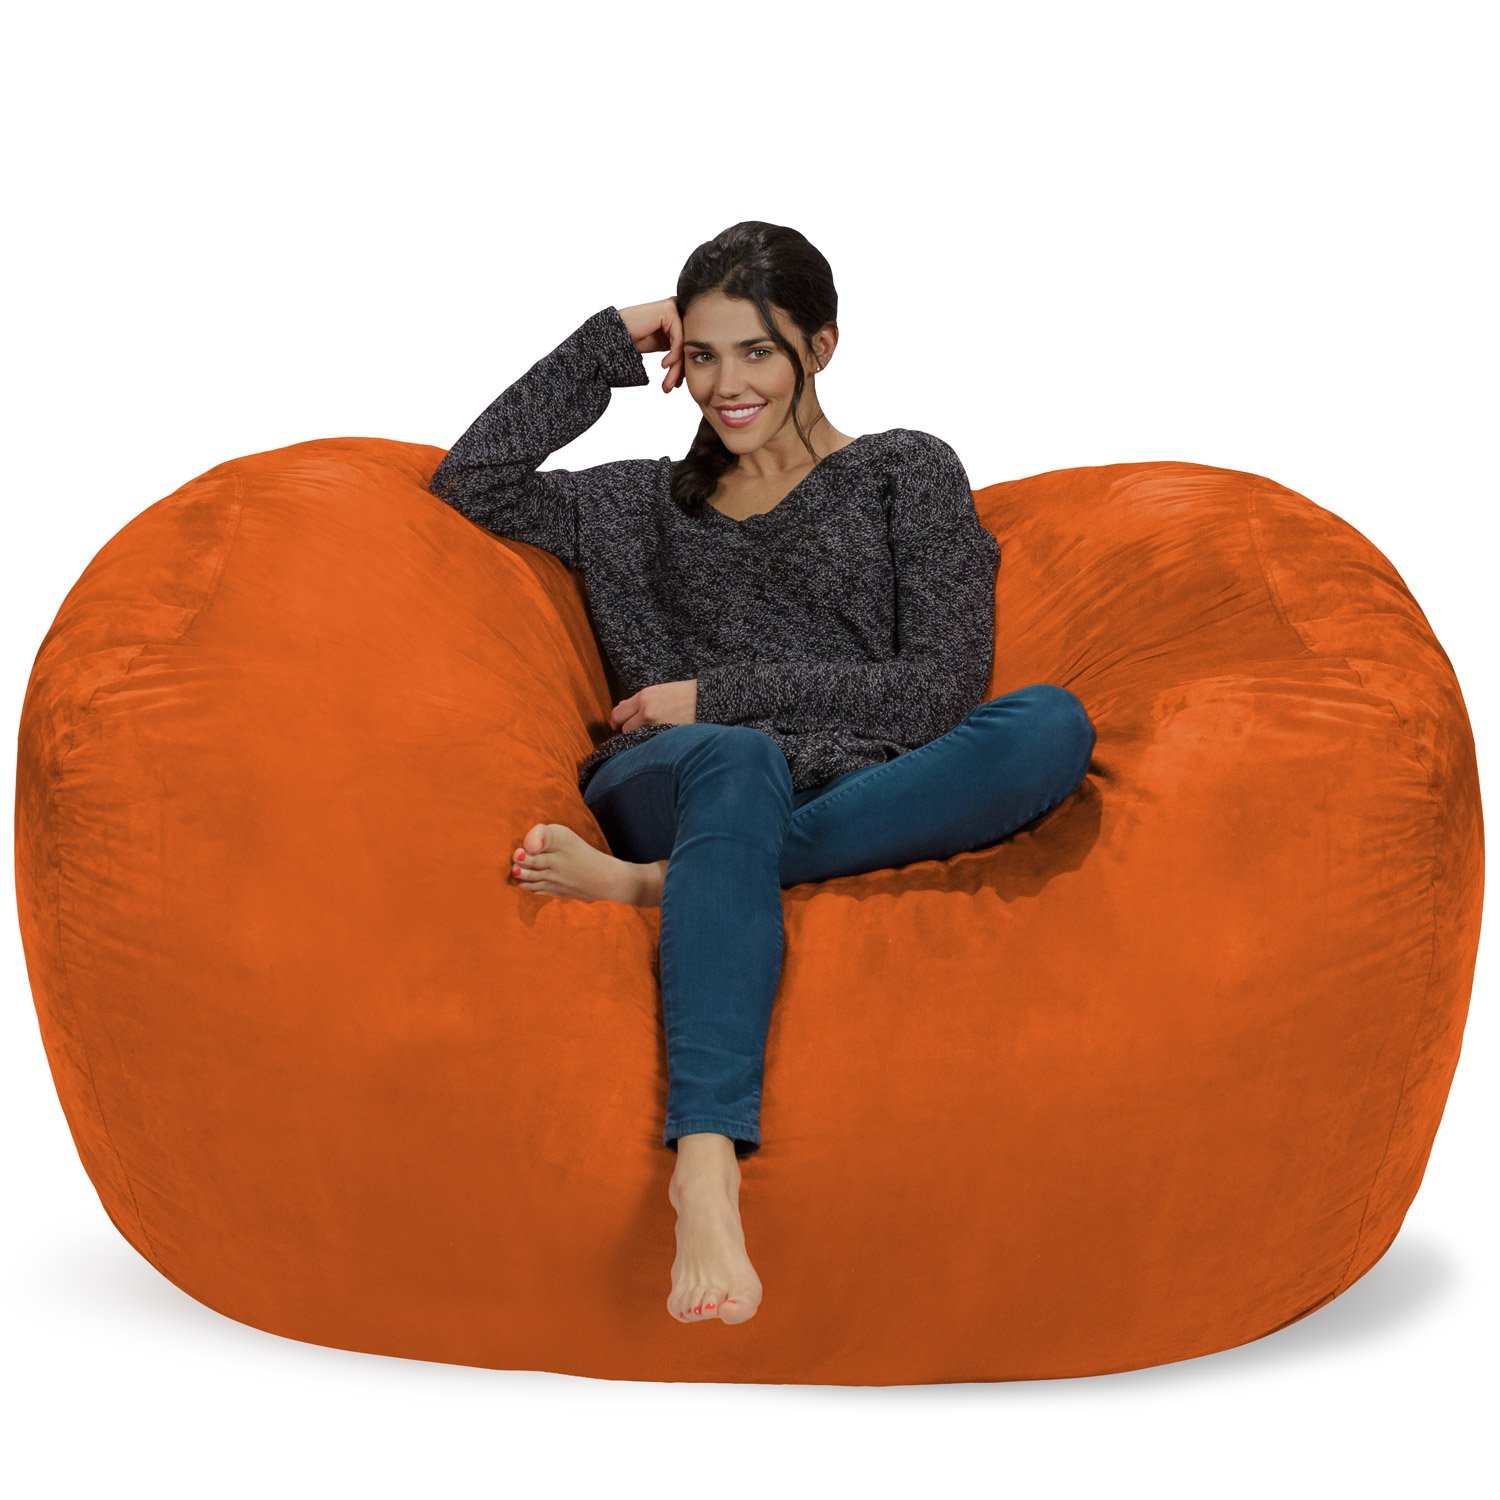 Chill Sack Bean Bag Chair: Huge 6' Memory Foam Furniture Bag and Large Lounger - Big Sofa with Soft Micro Fiber Cover - Orange